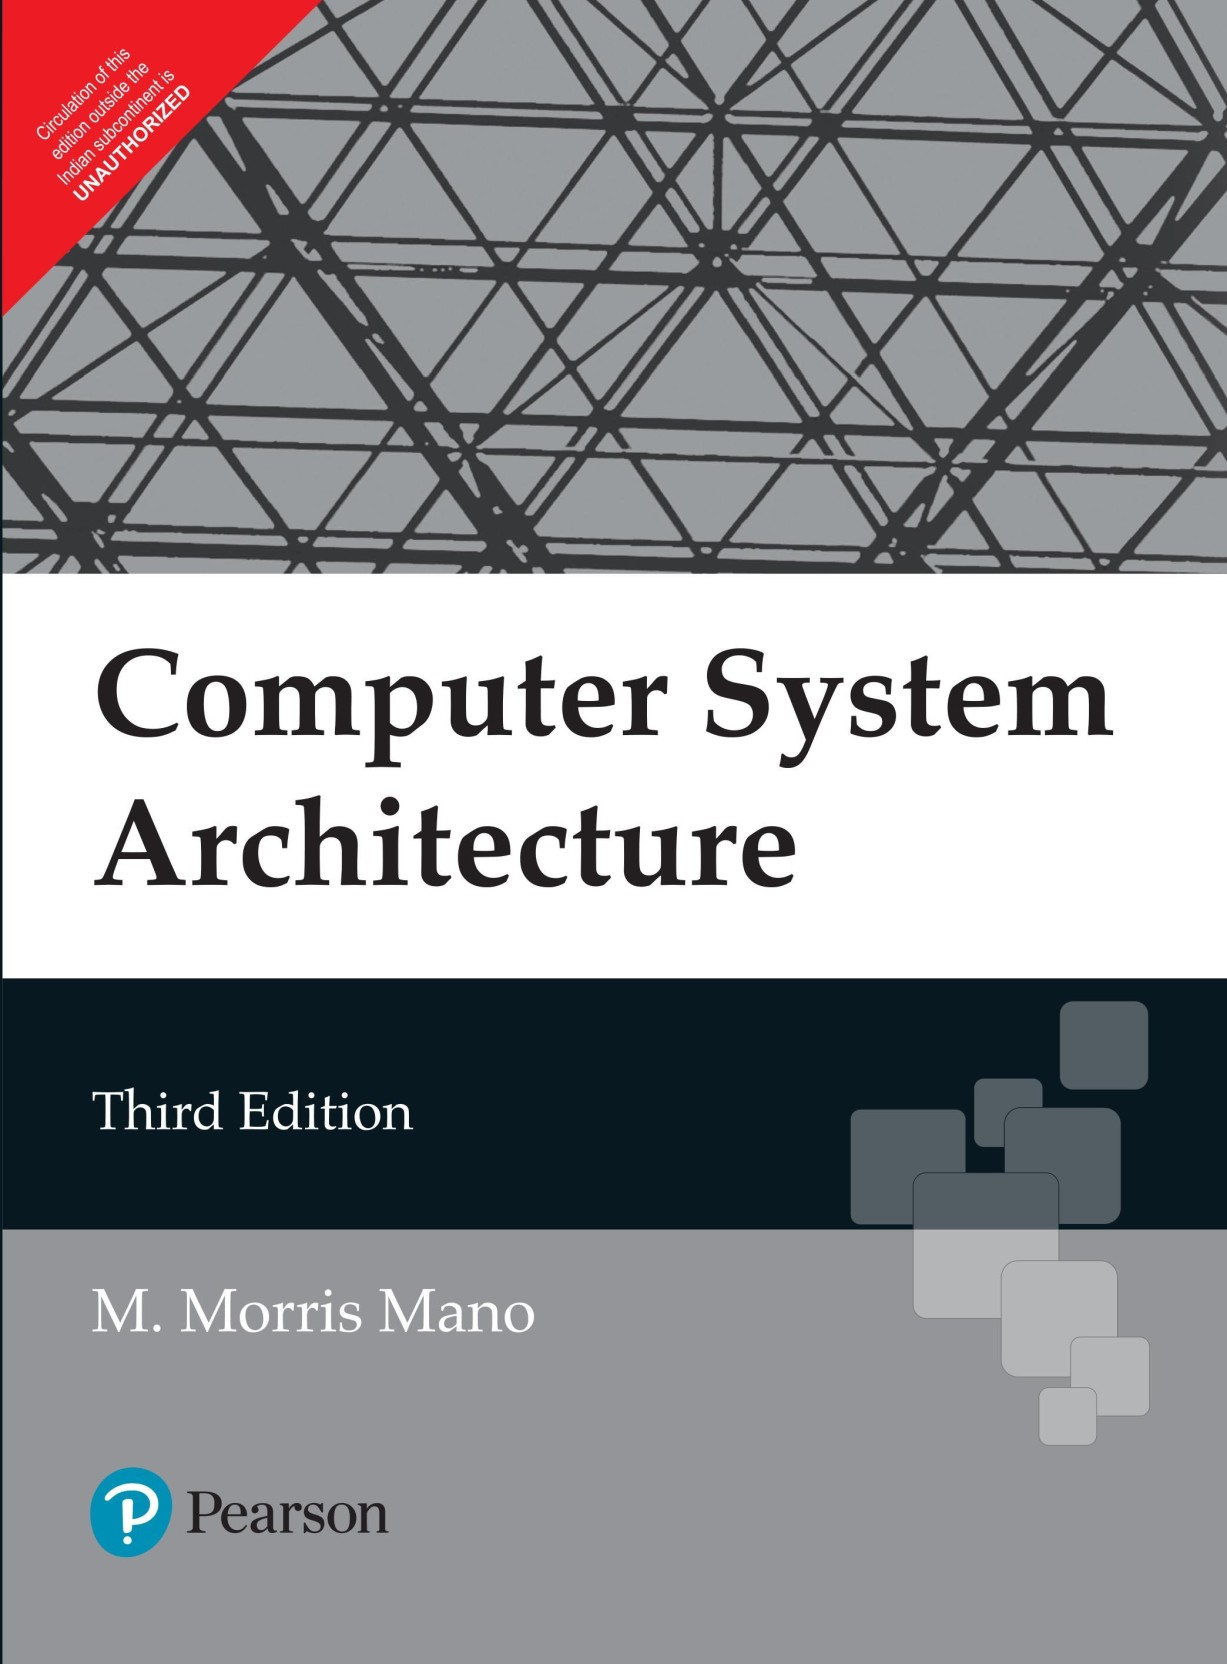 Computer System Architecture 3rd Edition Buy Organization Of Systems Arithmetic Add To Cart